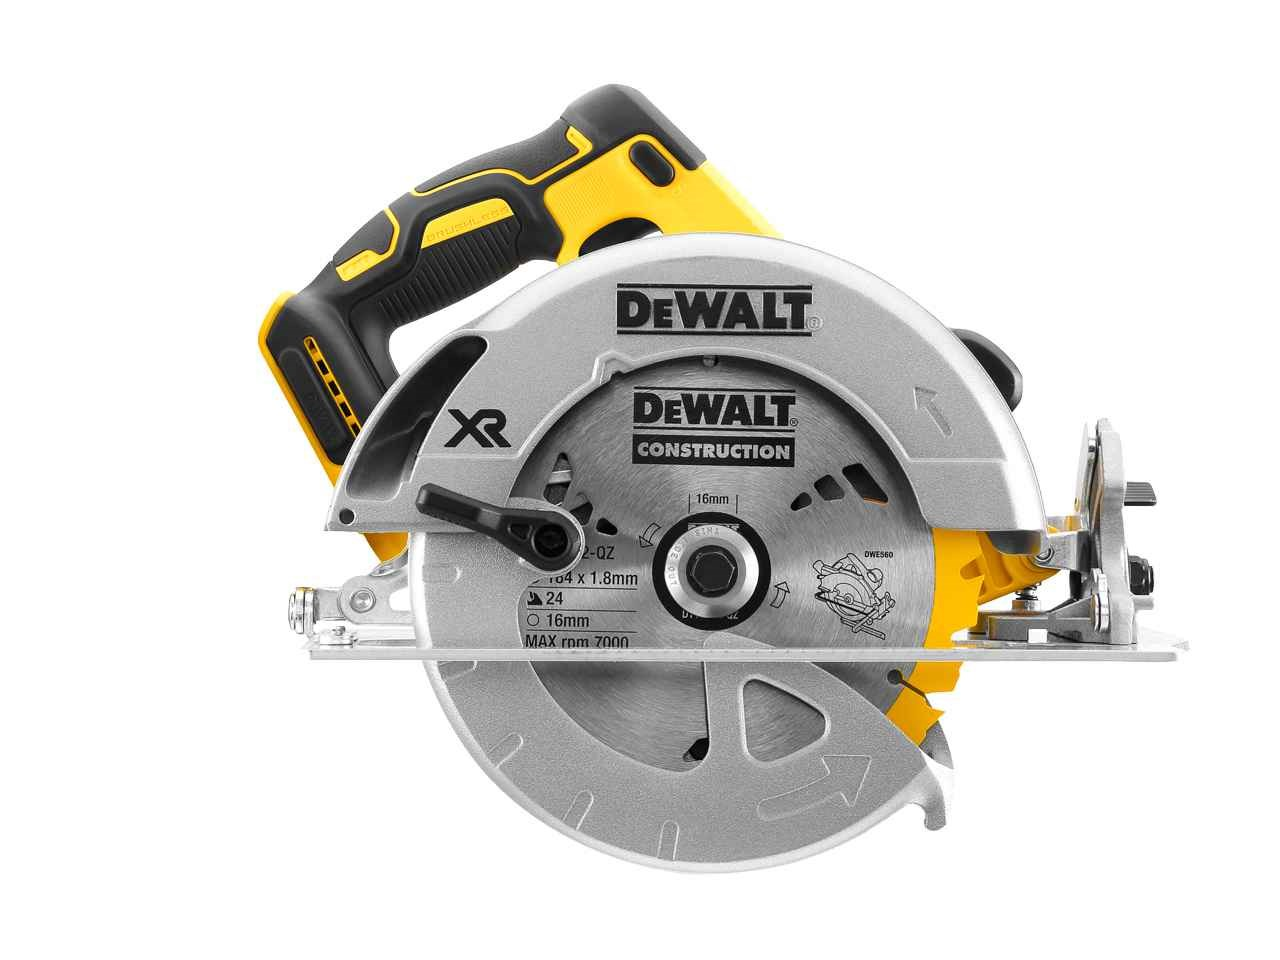 Dewalt dcs570n 18v xr brushless 184mm circular saw bare unit greentooth Choice Image